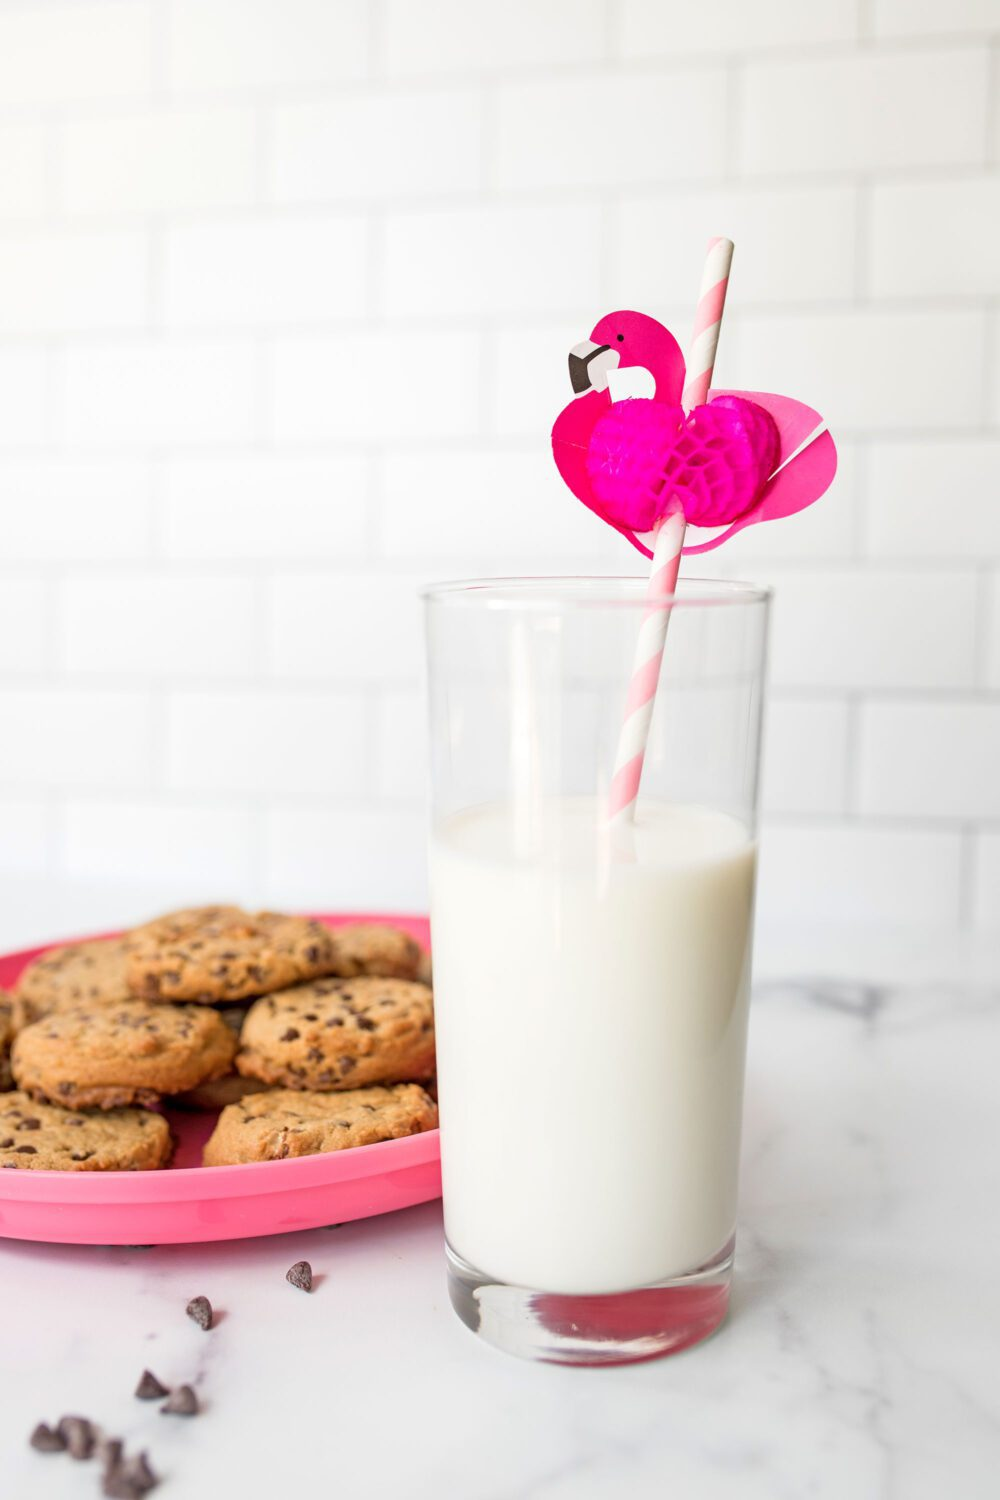 a glass of milk with a flamingo straw and cookies in the background